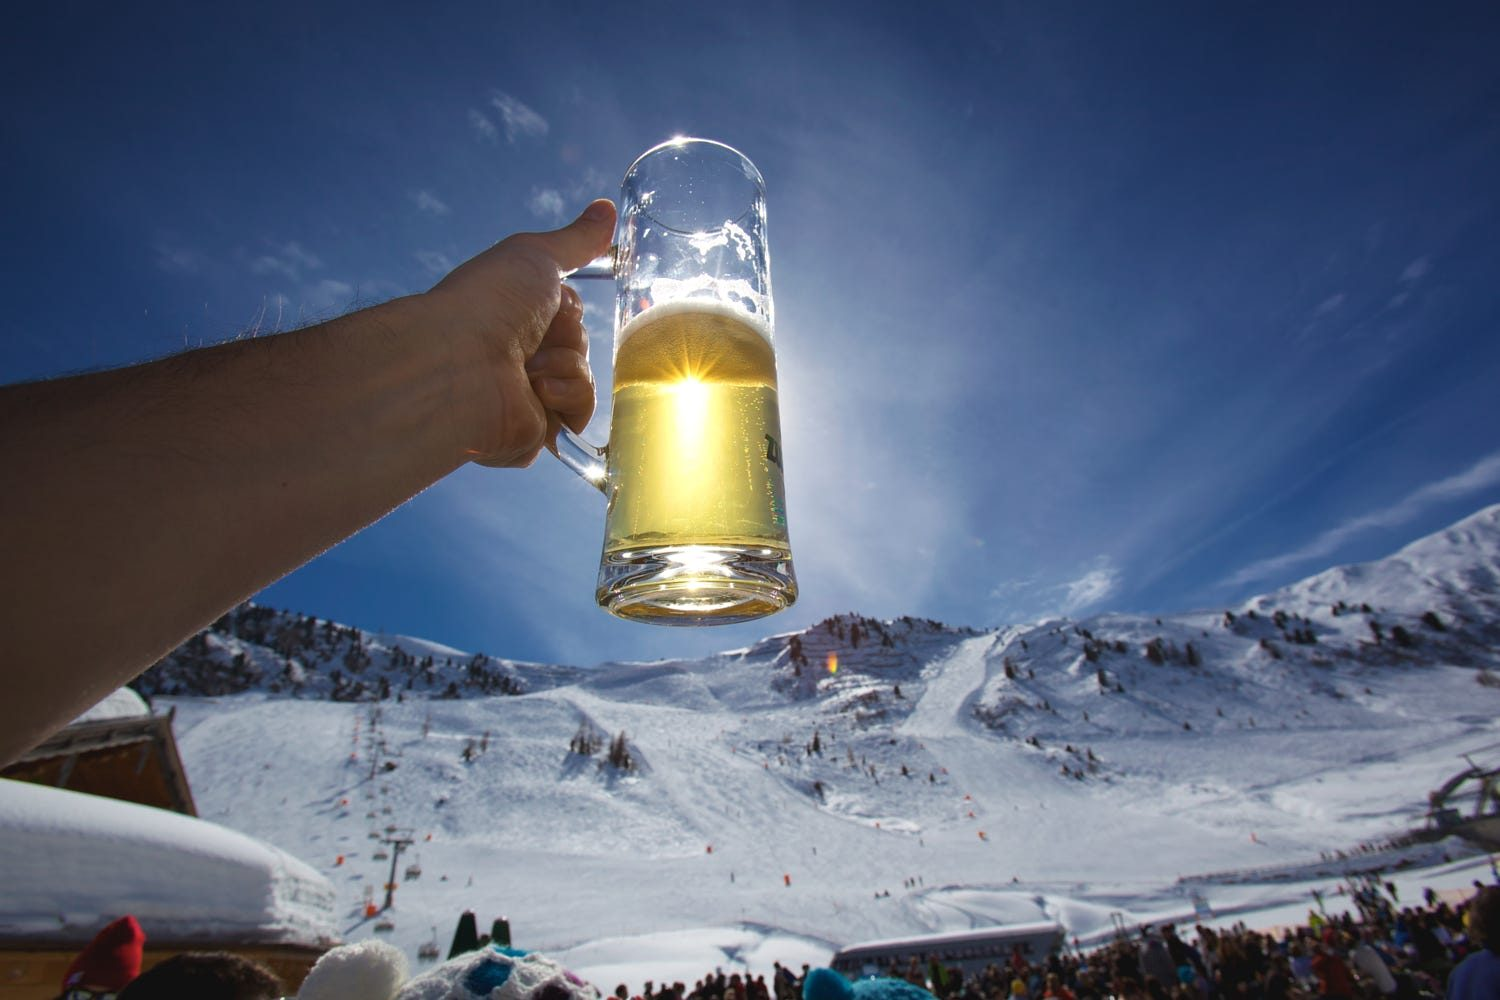 7 Best Places To Ski and Apres Ski in Western Canada